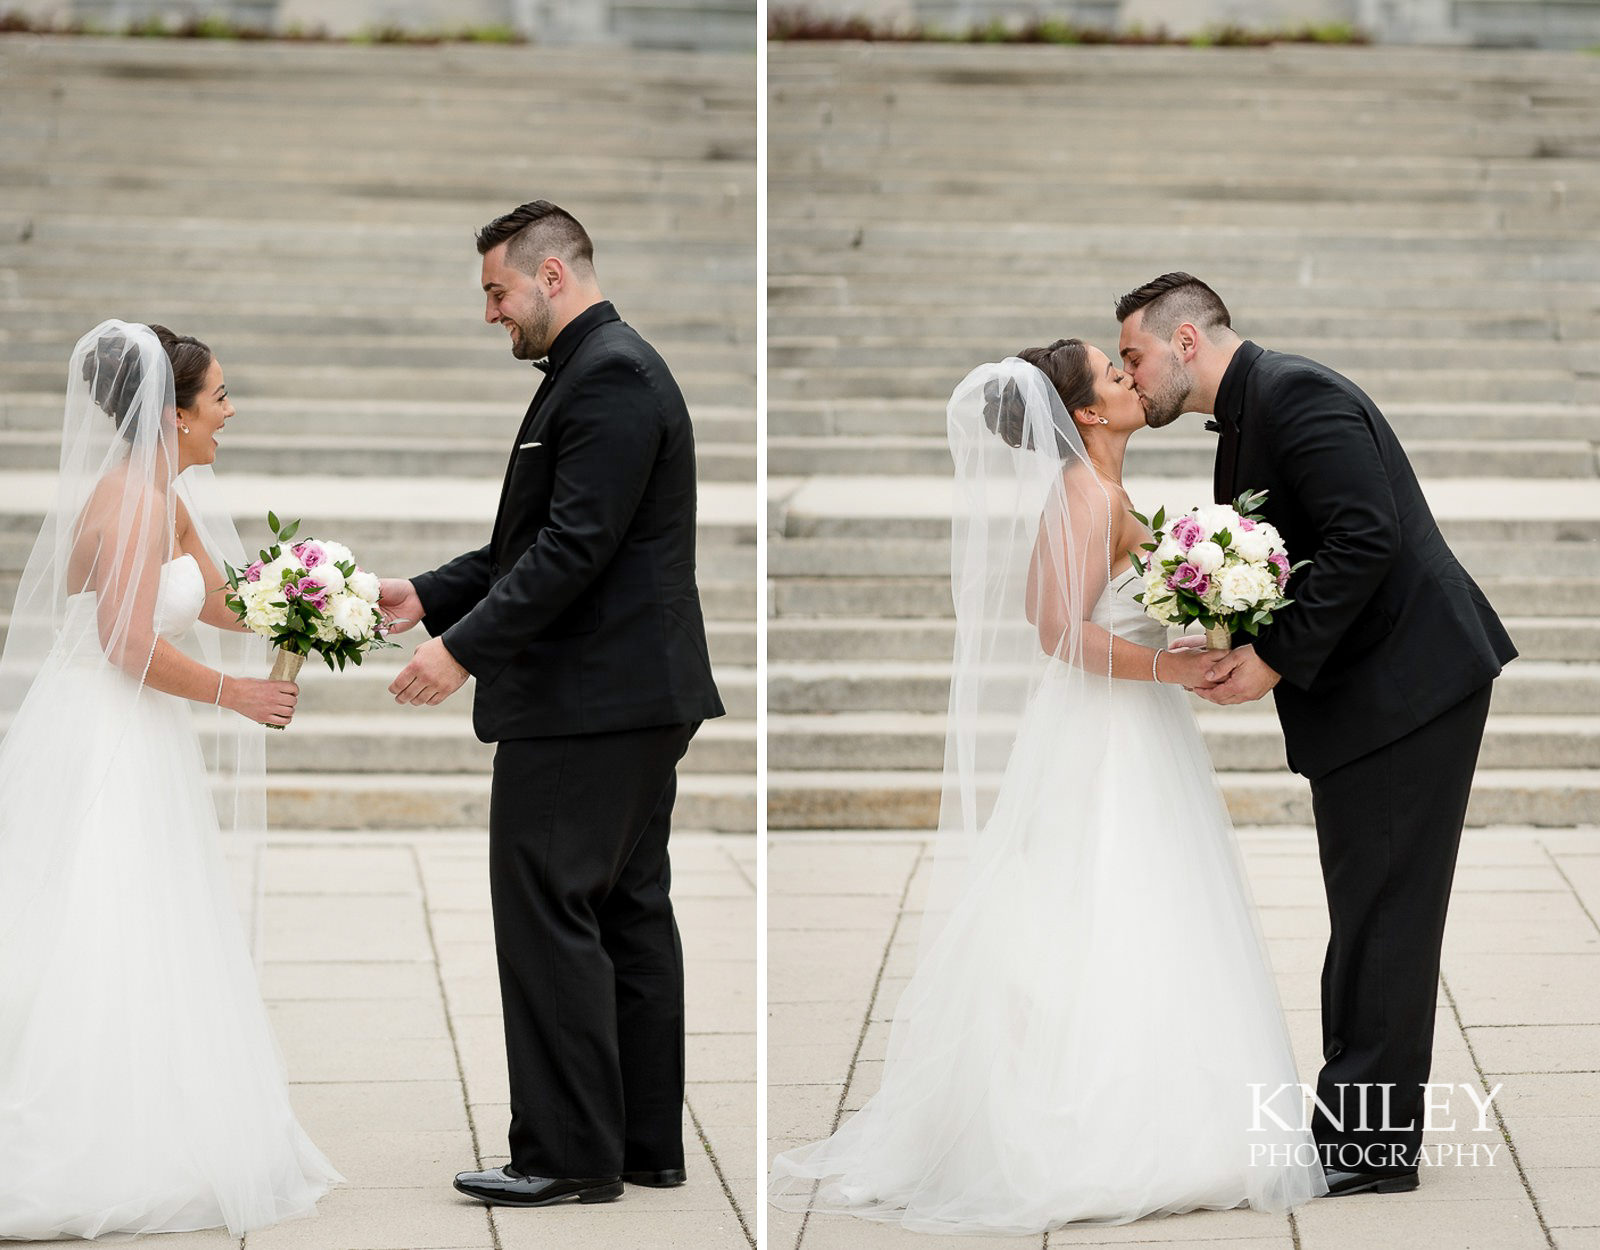 027 - Hoyt Lake First Look - Buffalo NY Wedding Pictures 6.jpg